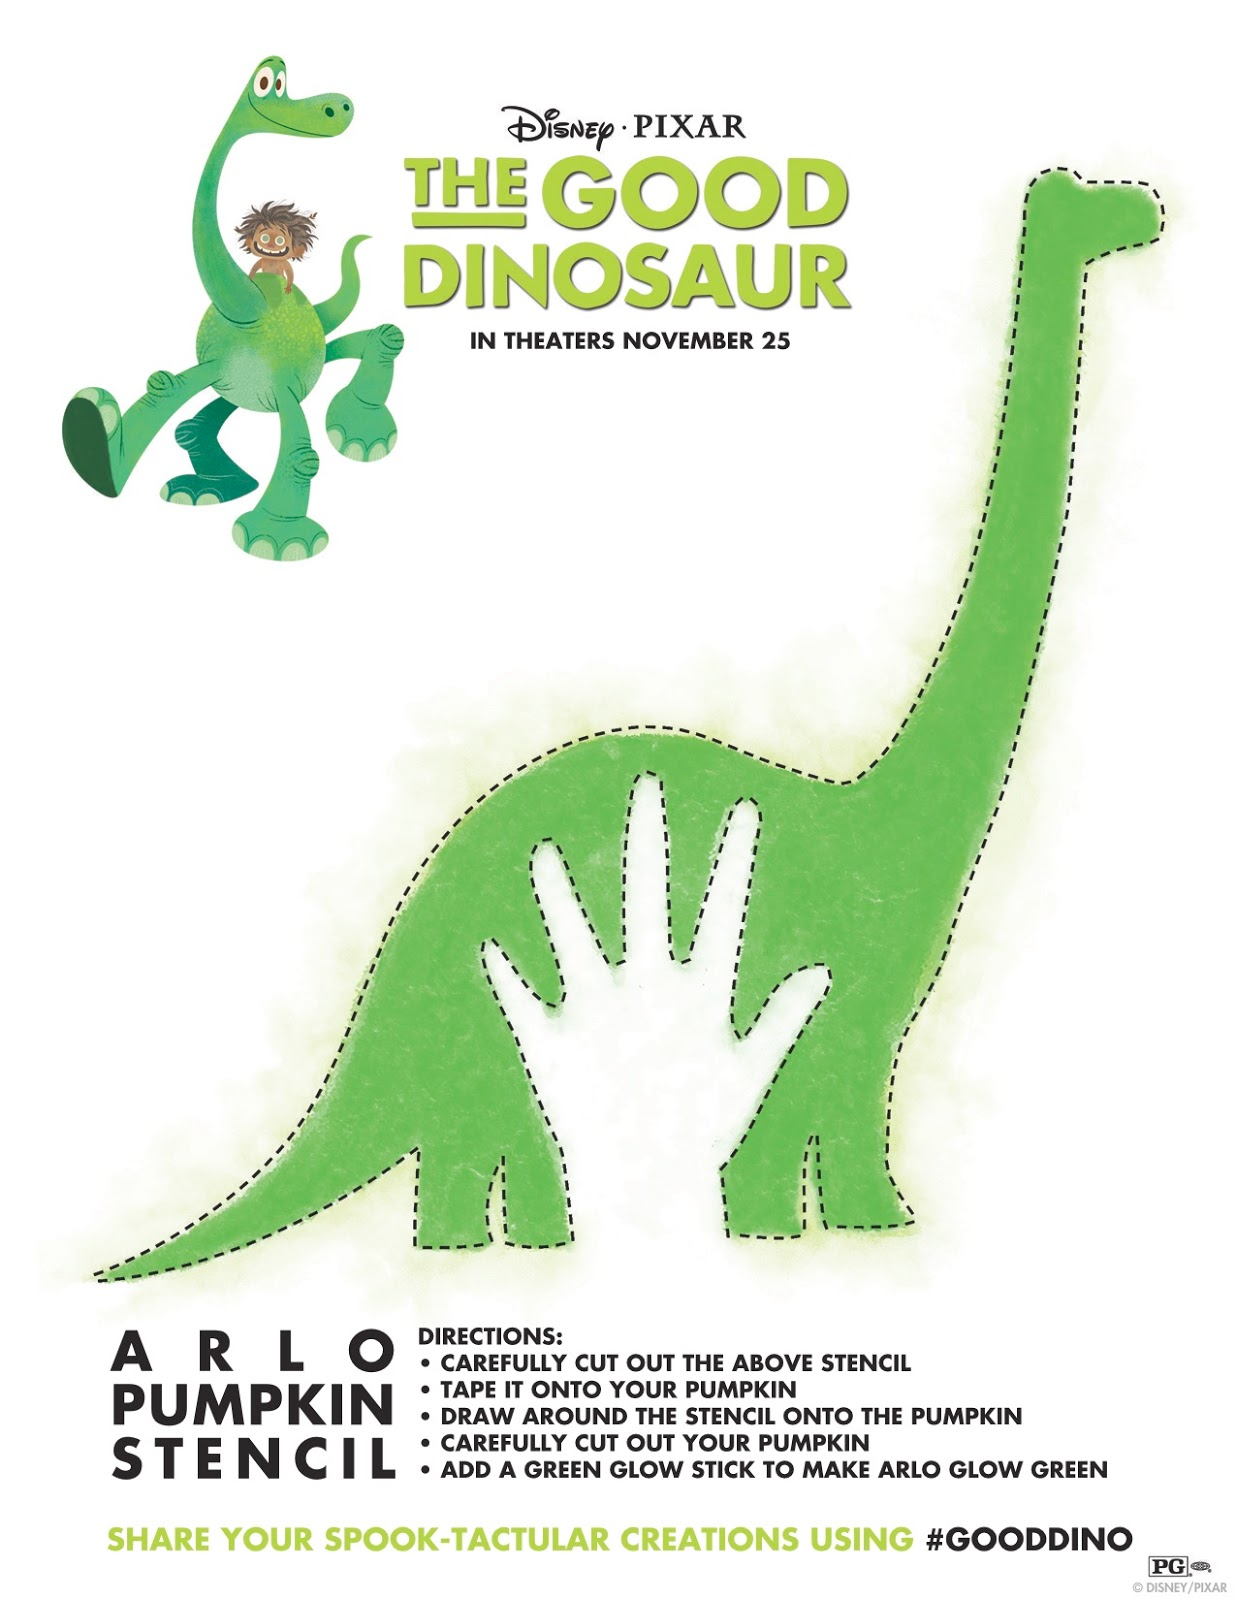 fandads halloween with the good dinosaur